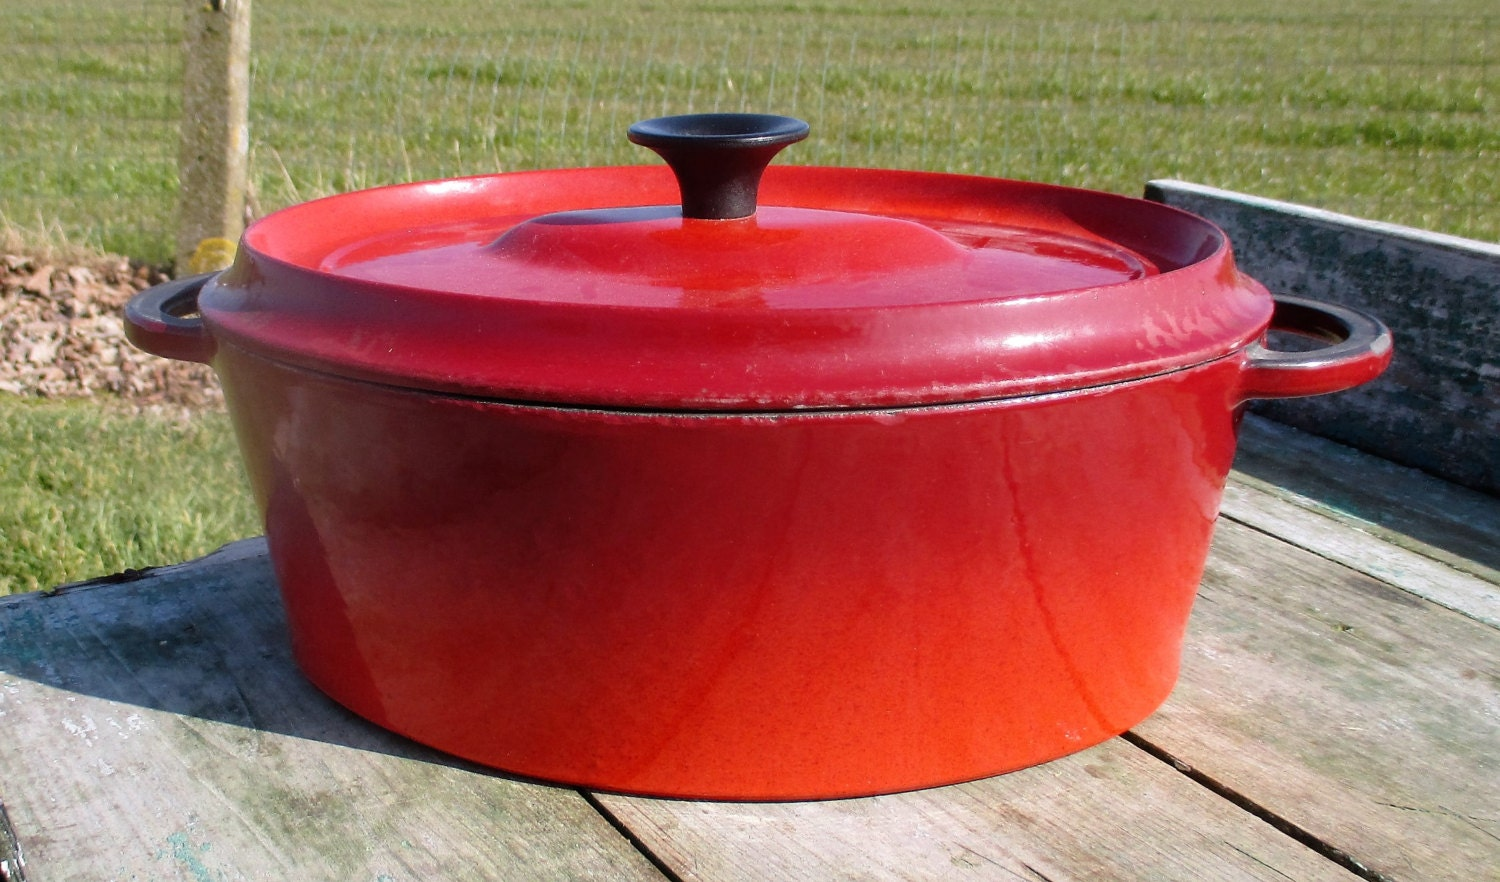 vintage french le creuset style red cast iron dutch oven. Black Bedroom Furniture Sets. Home Design Ideas